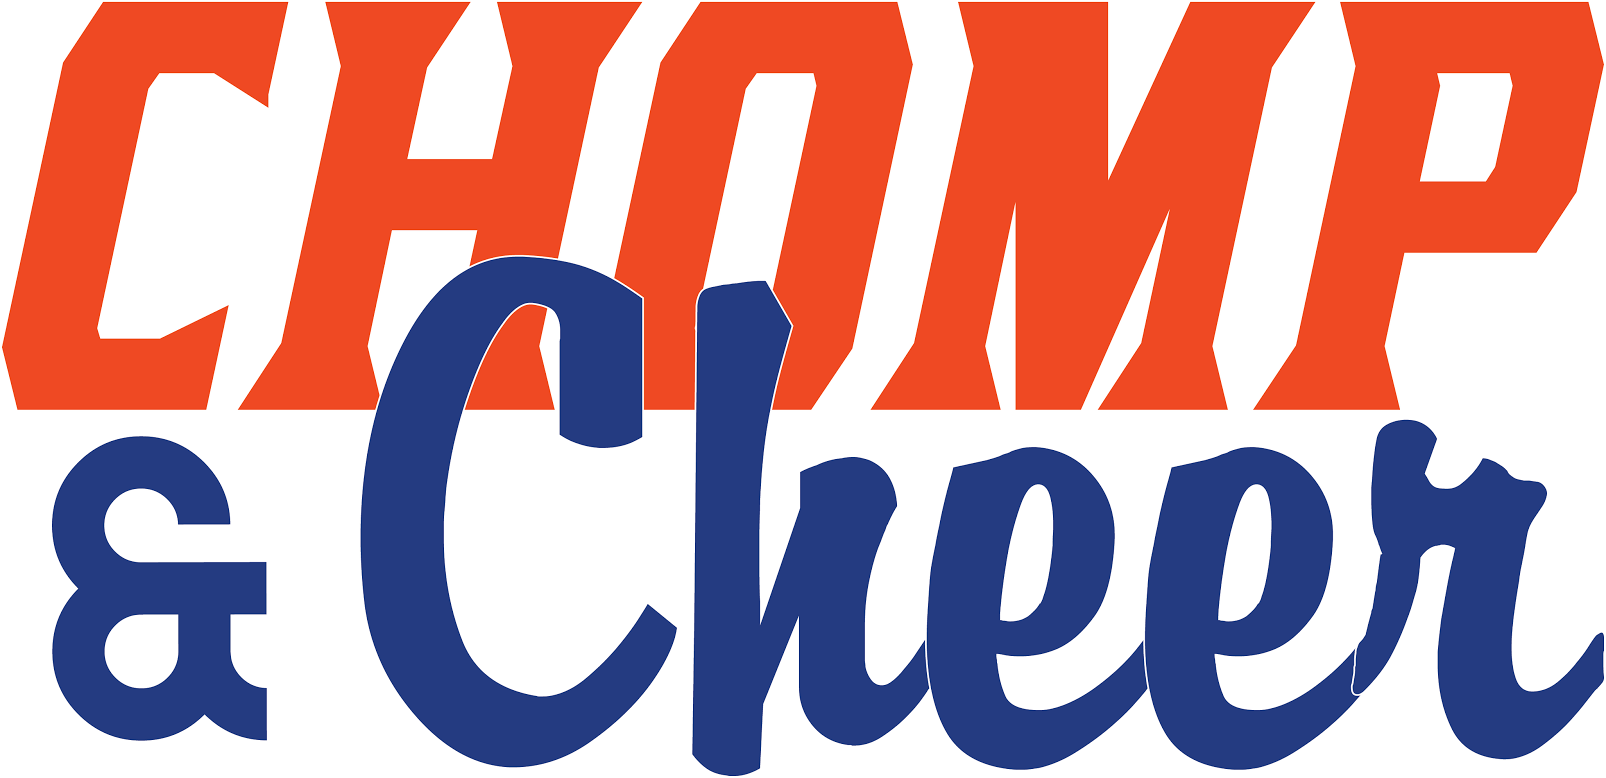 Chomp and Cheer